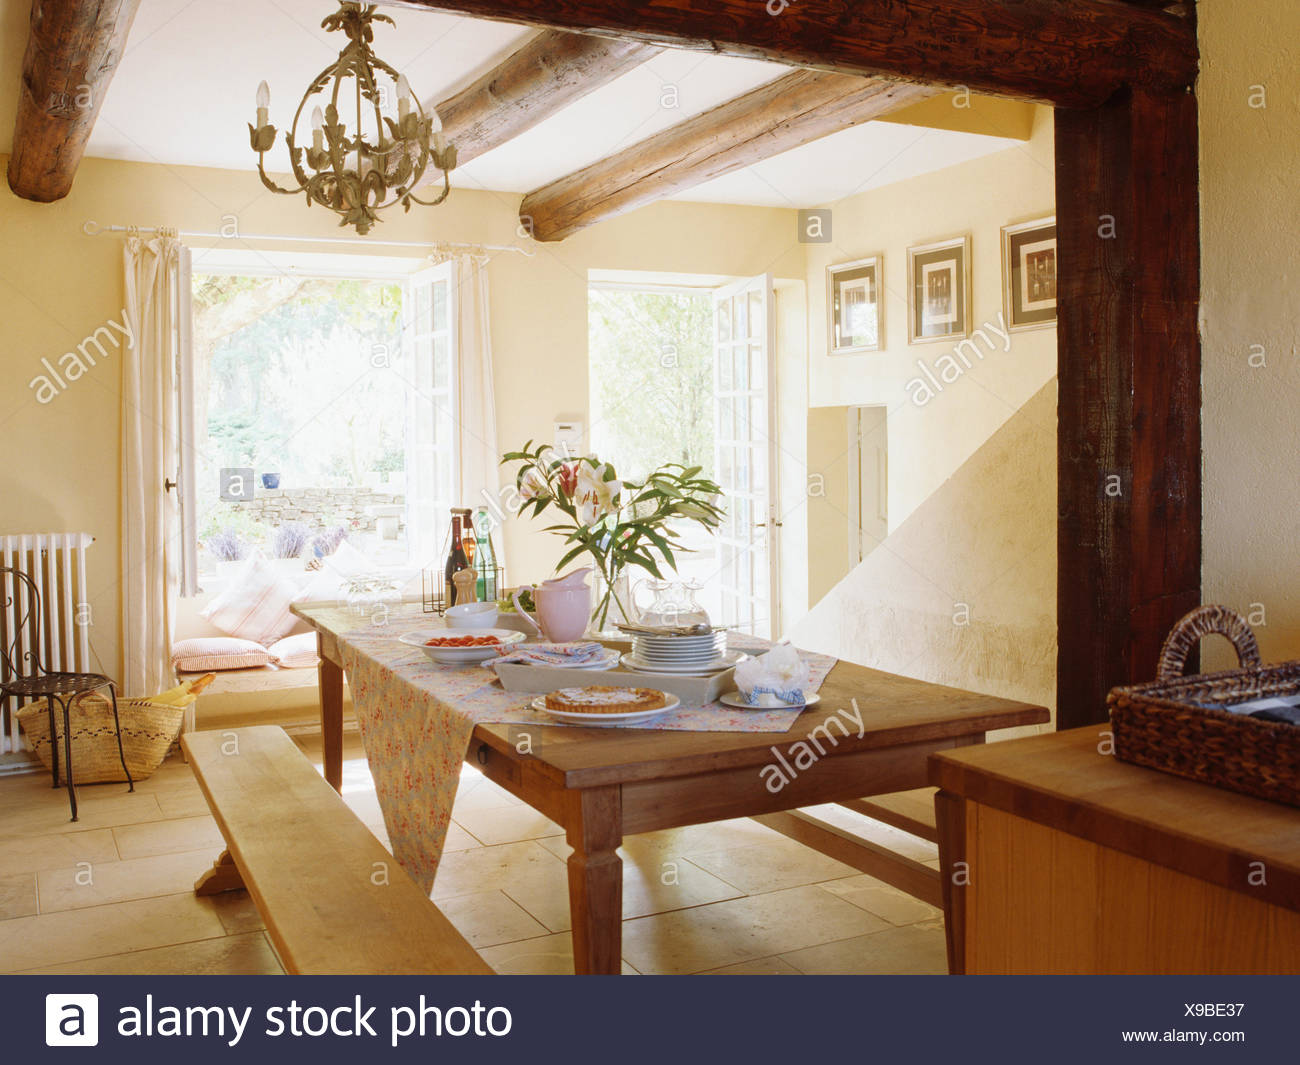 Simple Wooden Benches And Old Pine Table In Cream French ...